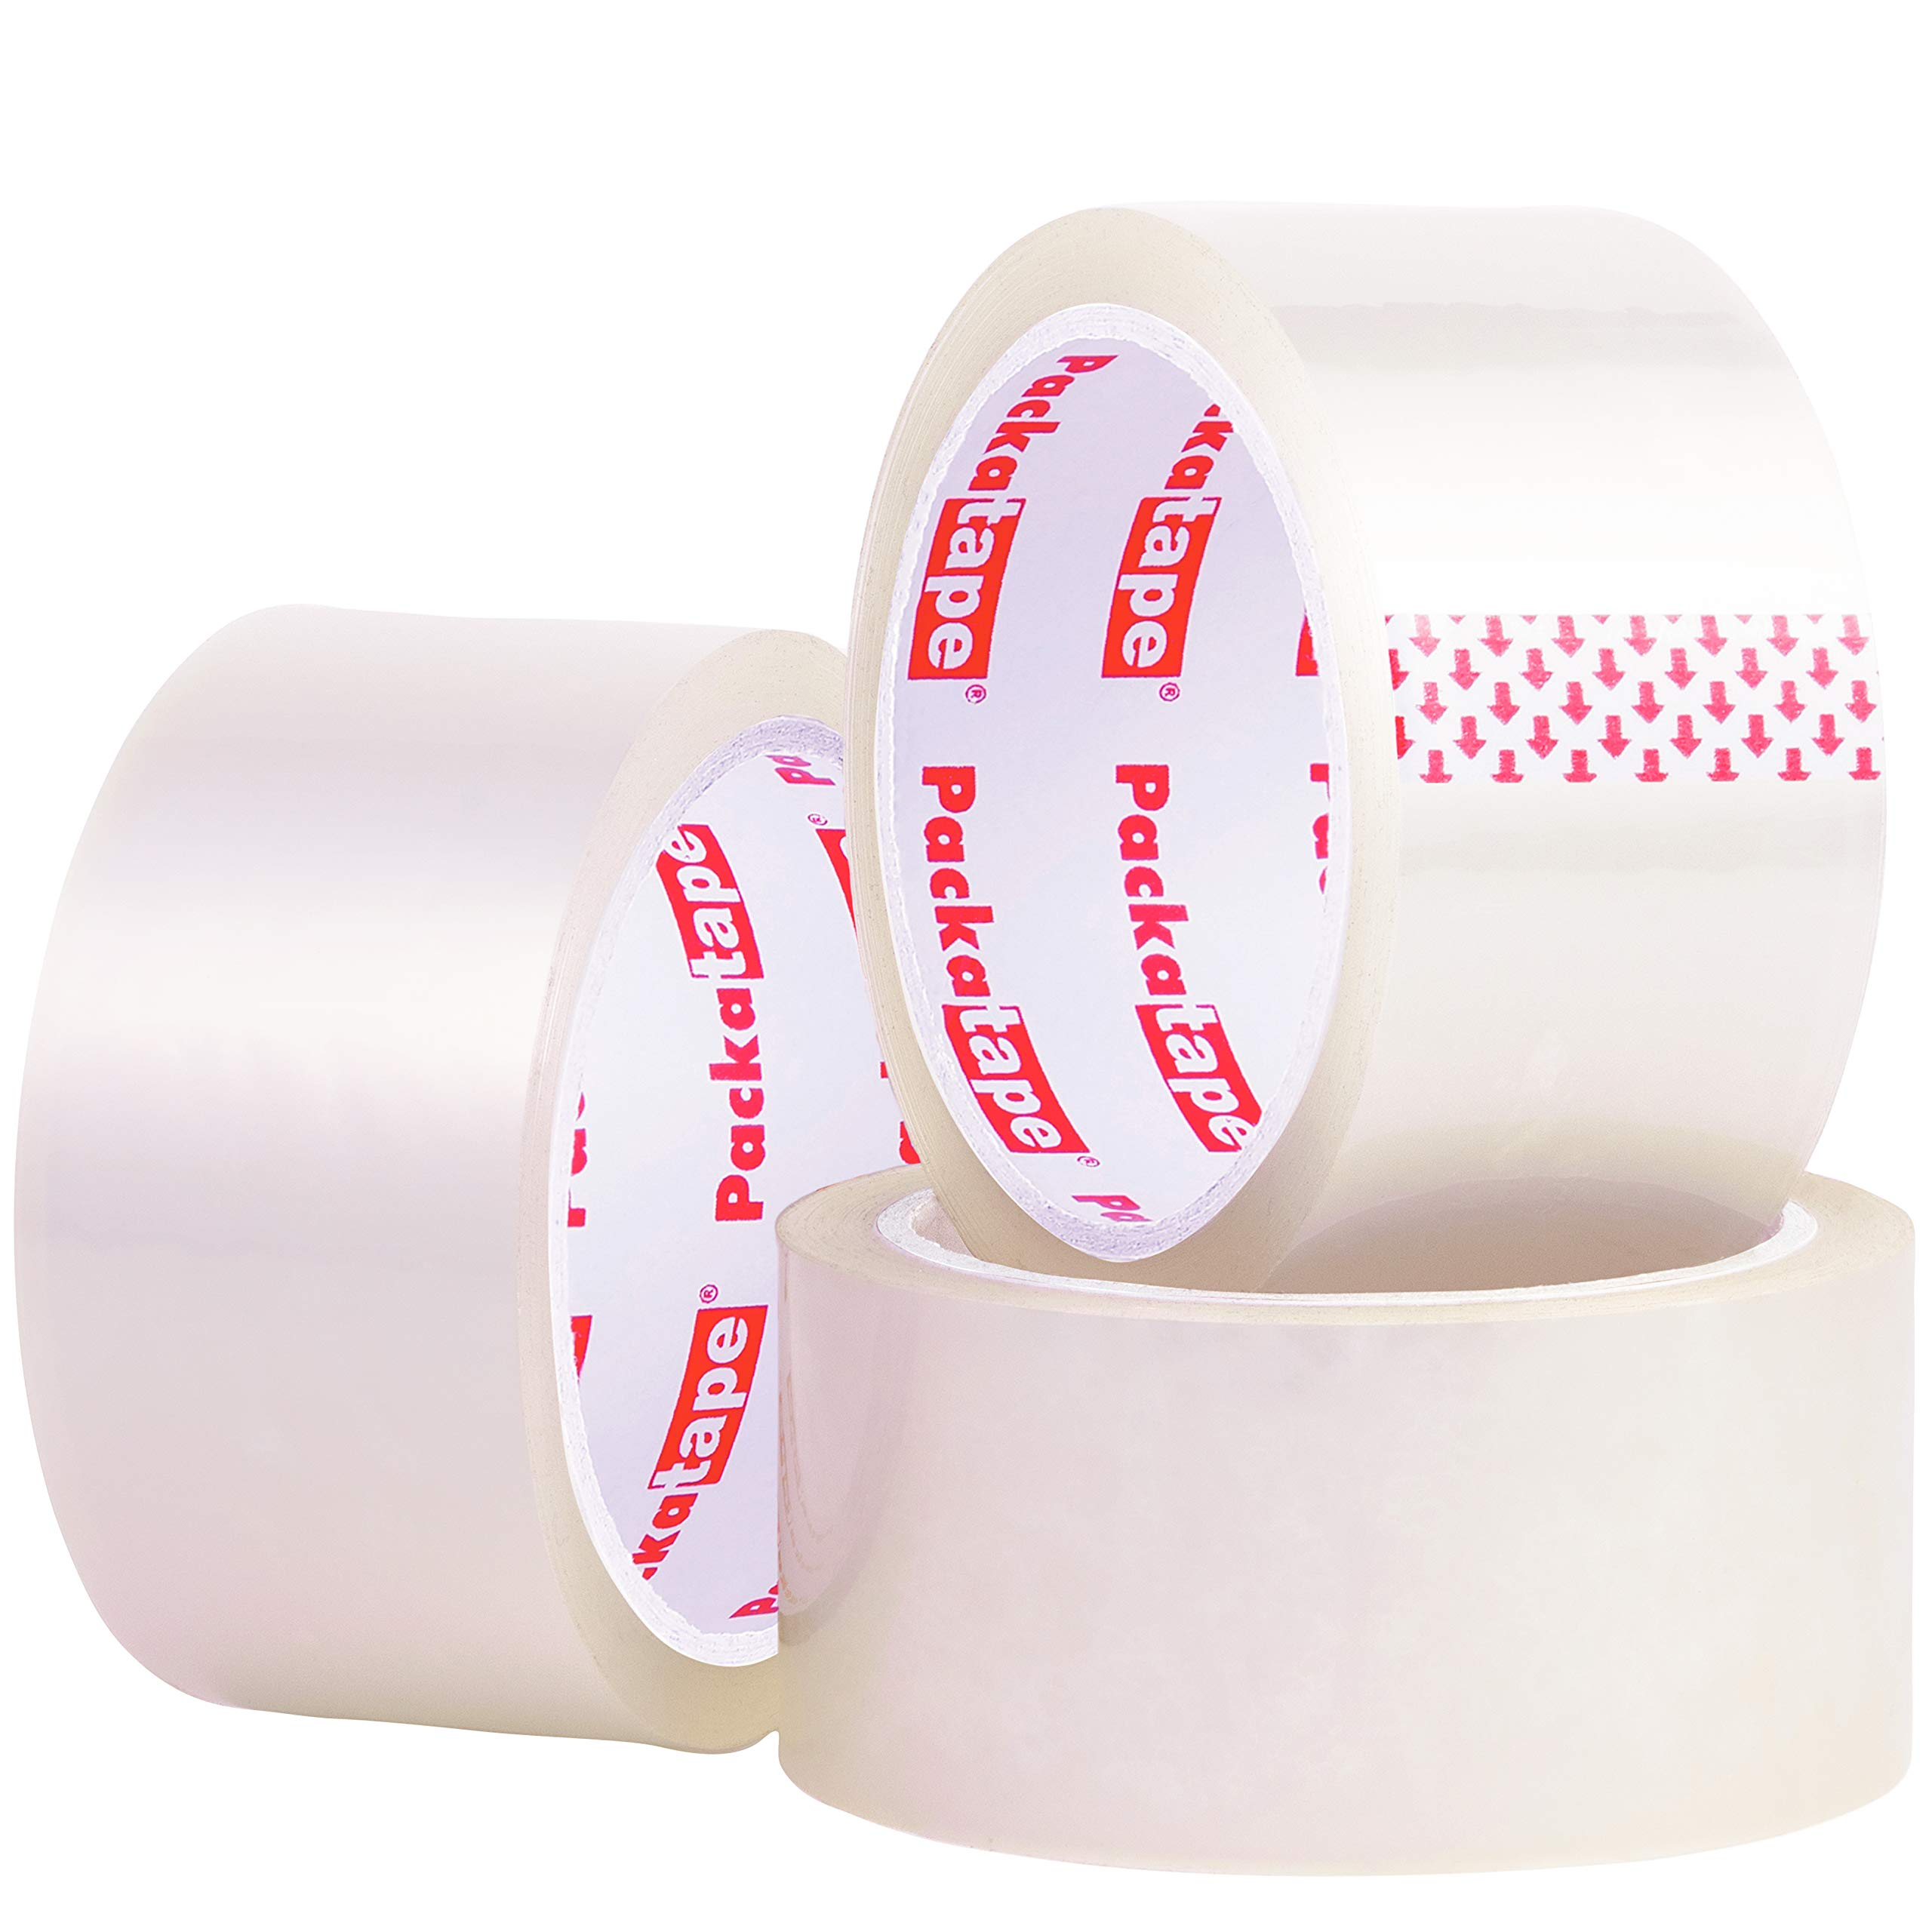 Clear Parcel Tape 48mm x 66M Packing Parcel Packaging Box Sealing Tape